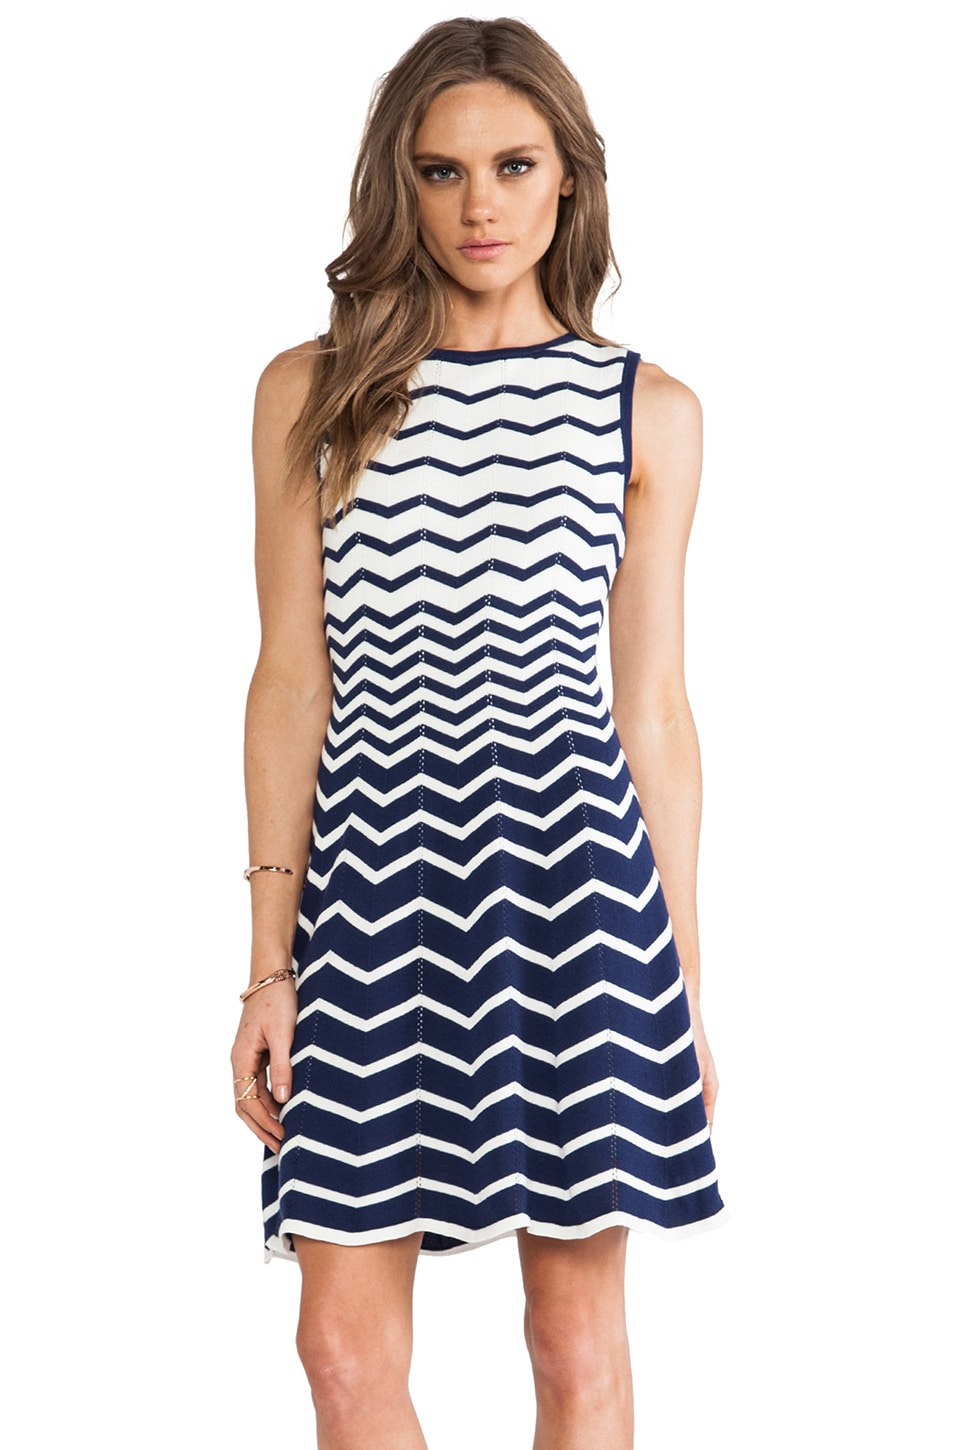 Trina Turk Martinique Dress in Navy & Whitewash